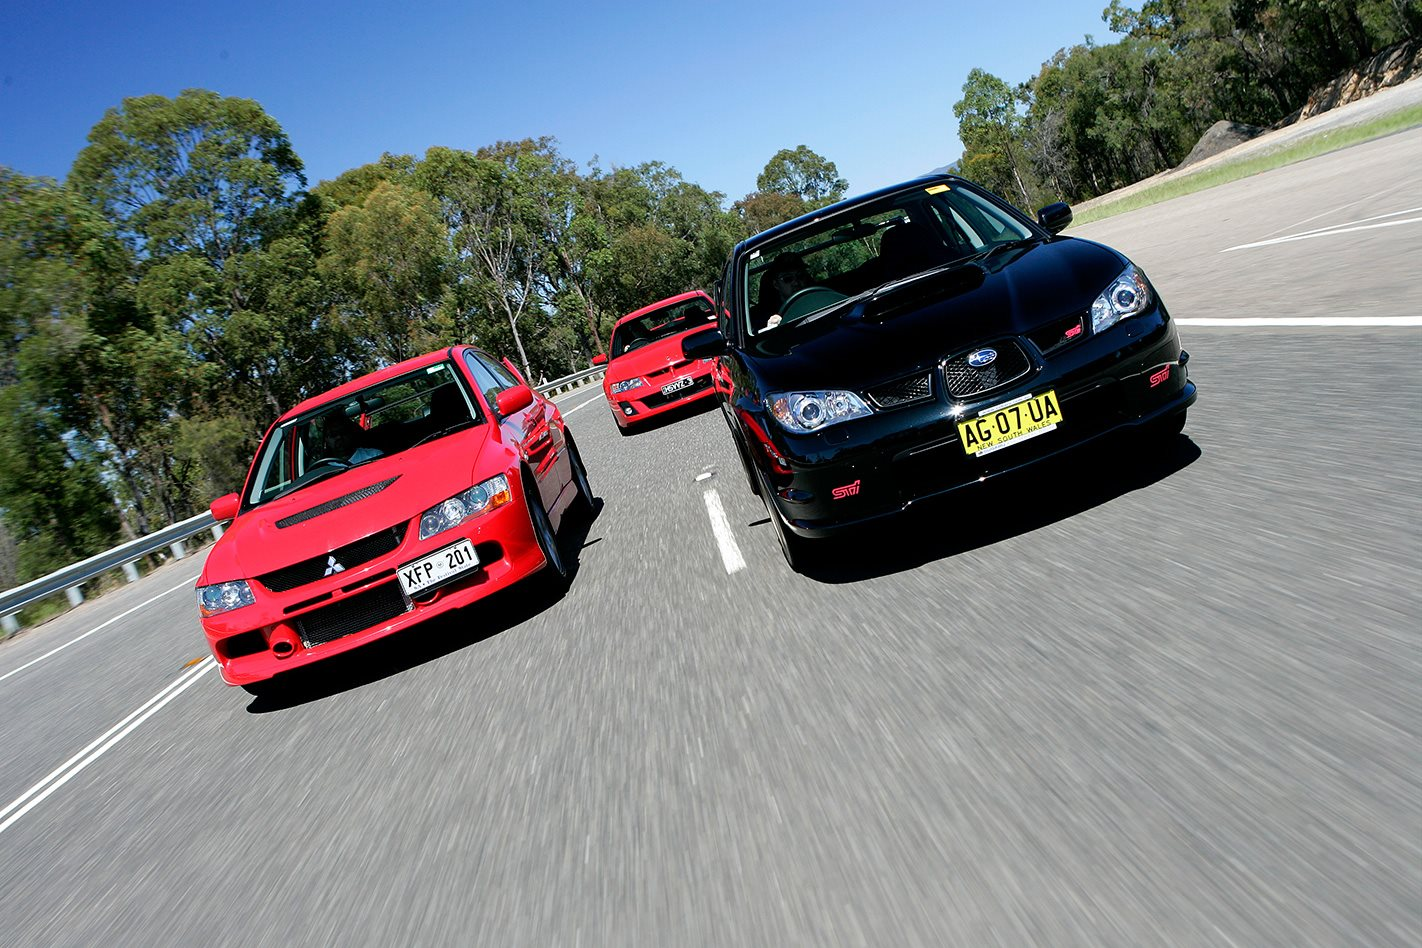 subaru wrx sti vs mitsubishi evo ix vs hsv clubsport. Black Bedroom Furniture Sets. Home Design Ideas